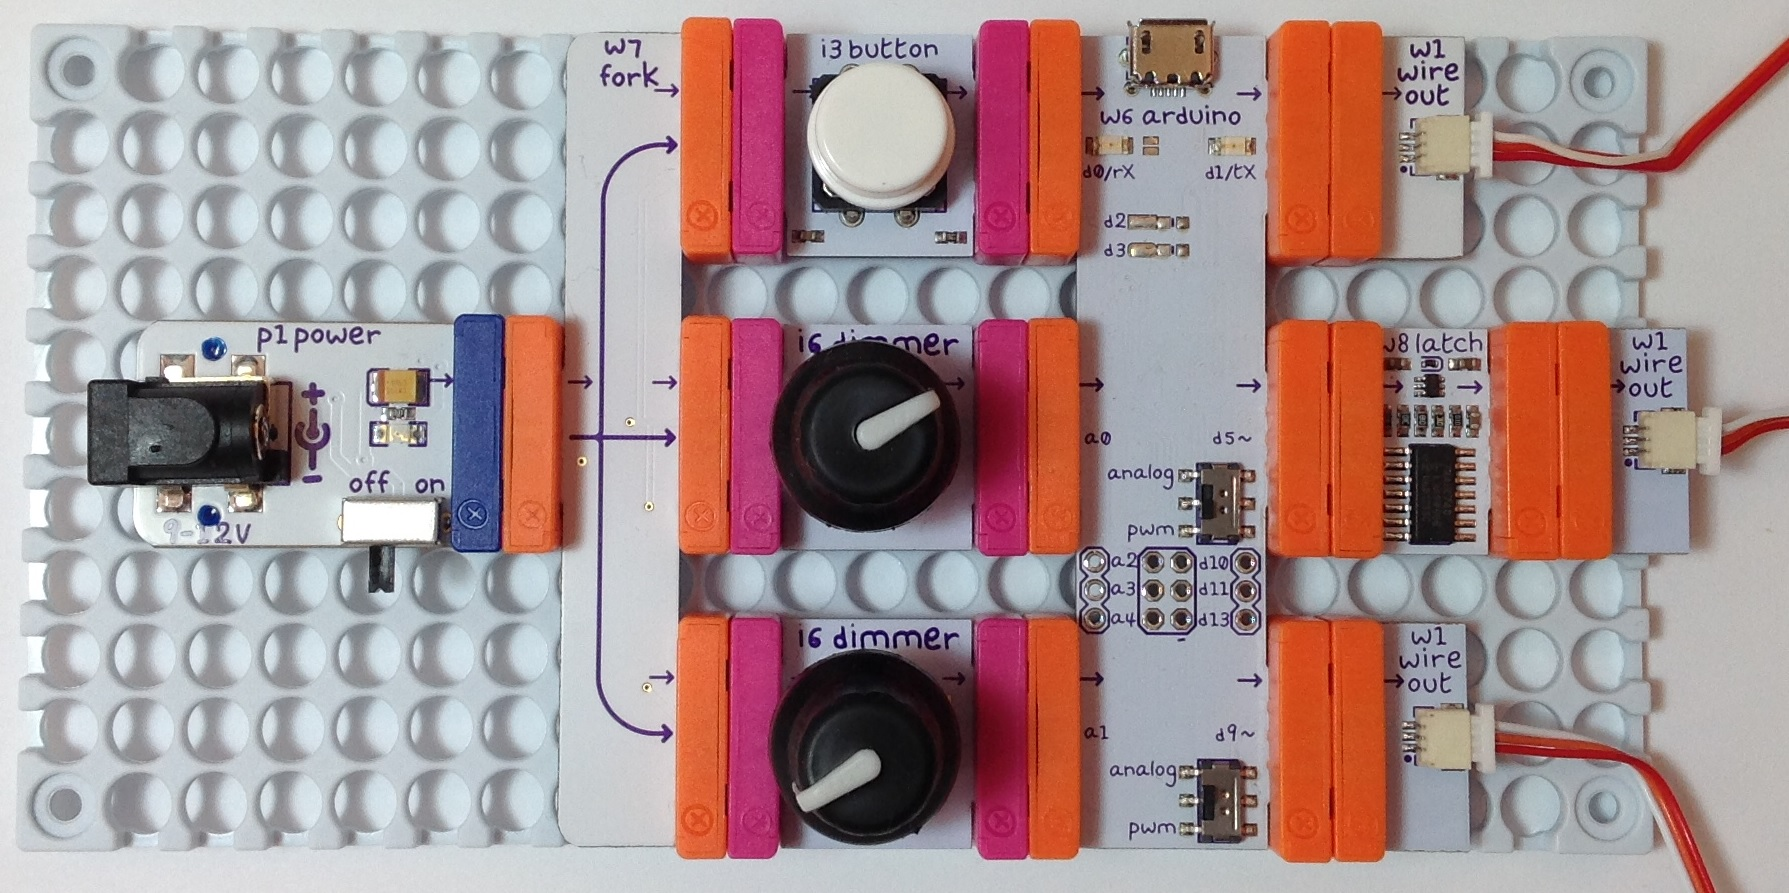 Sequencer with trigger and modulation | Sand, software and sound